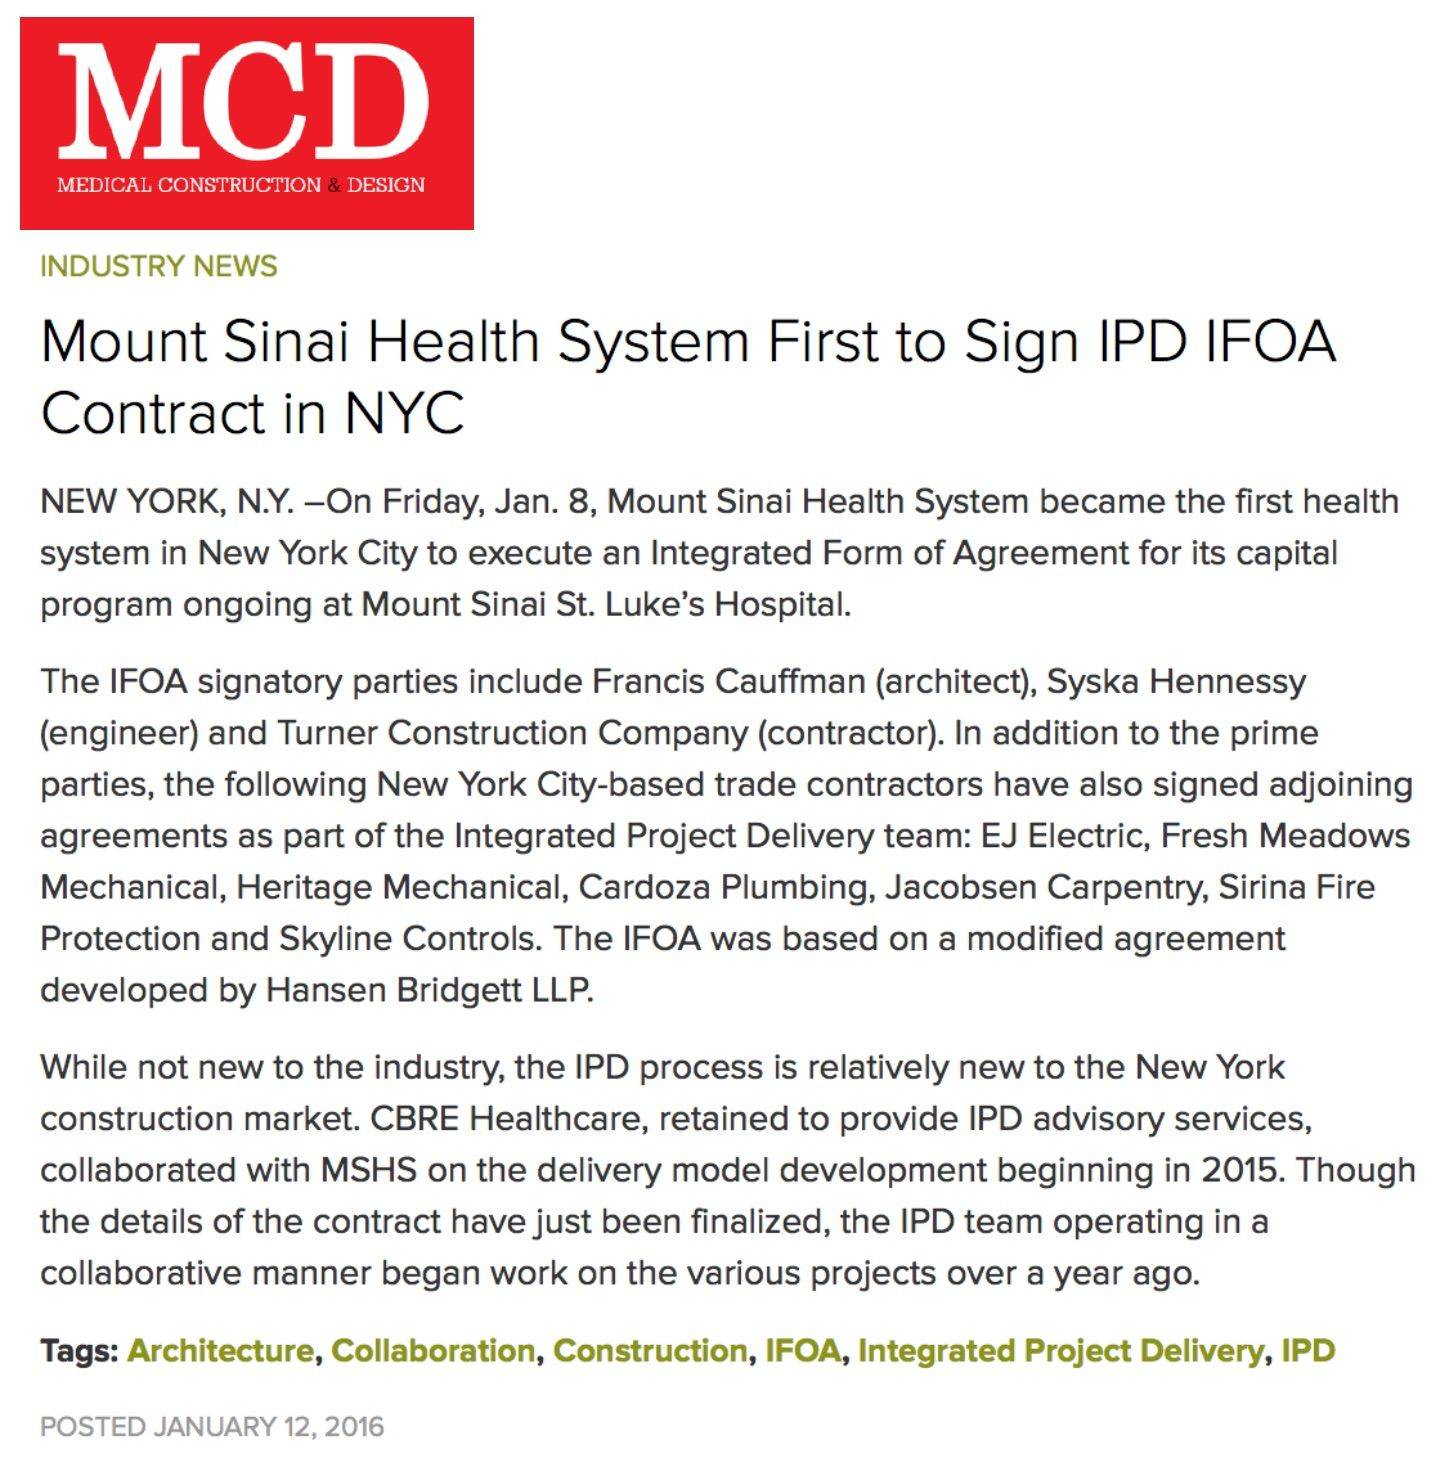 Mount Sinai Health System First To Sign Ipd Ifoa Contract In Nyc